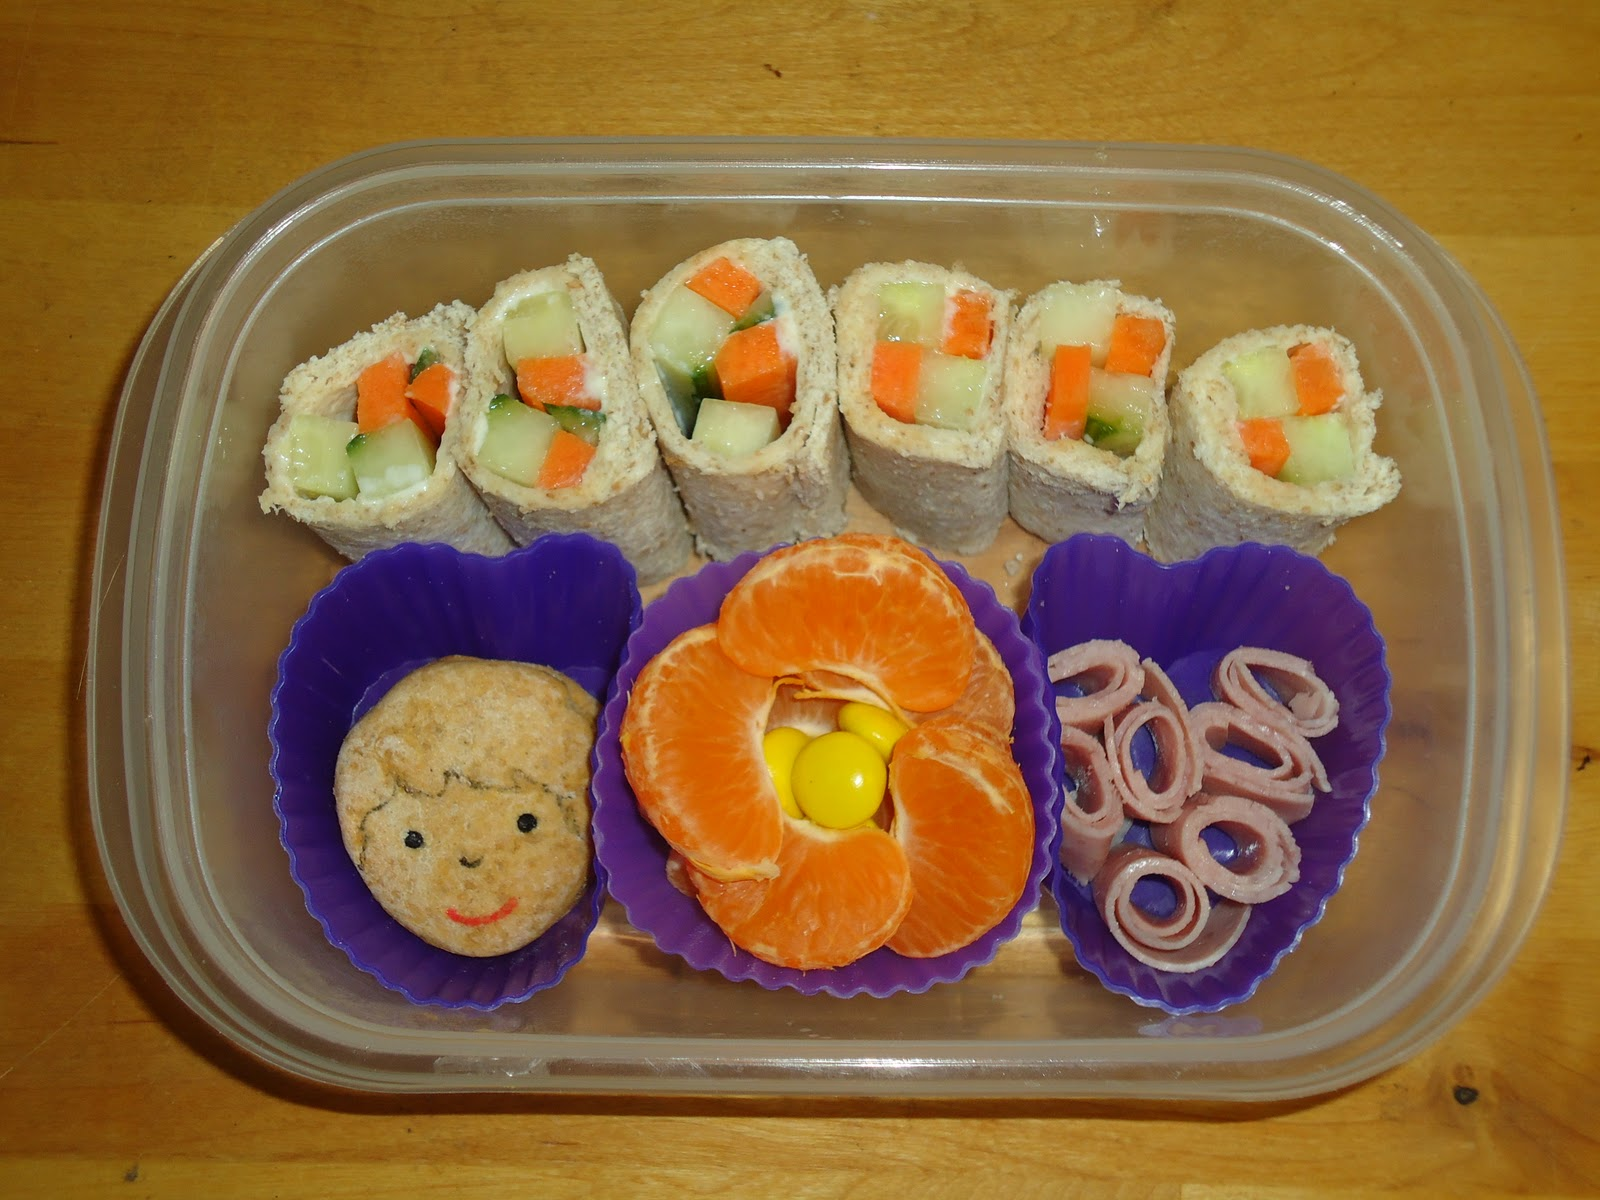 Some Sandwich Sushi, Ham roll ups, Nectraine Flower and Dan Jon Jr Biscuits